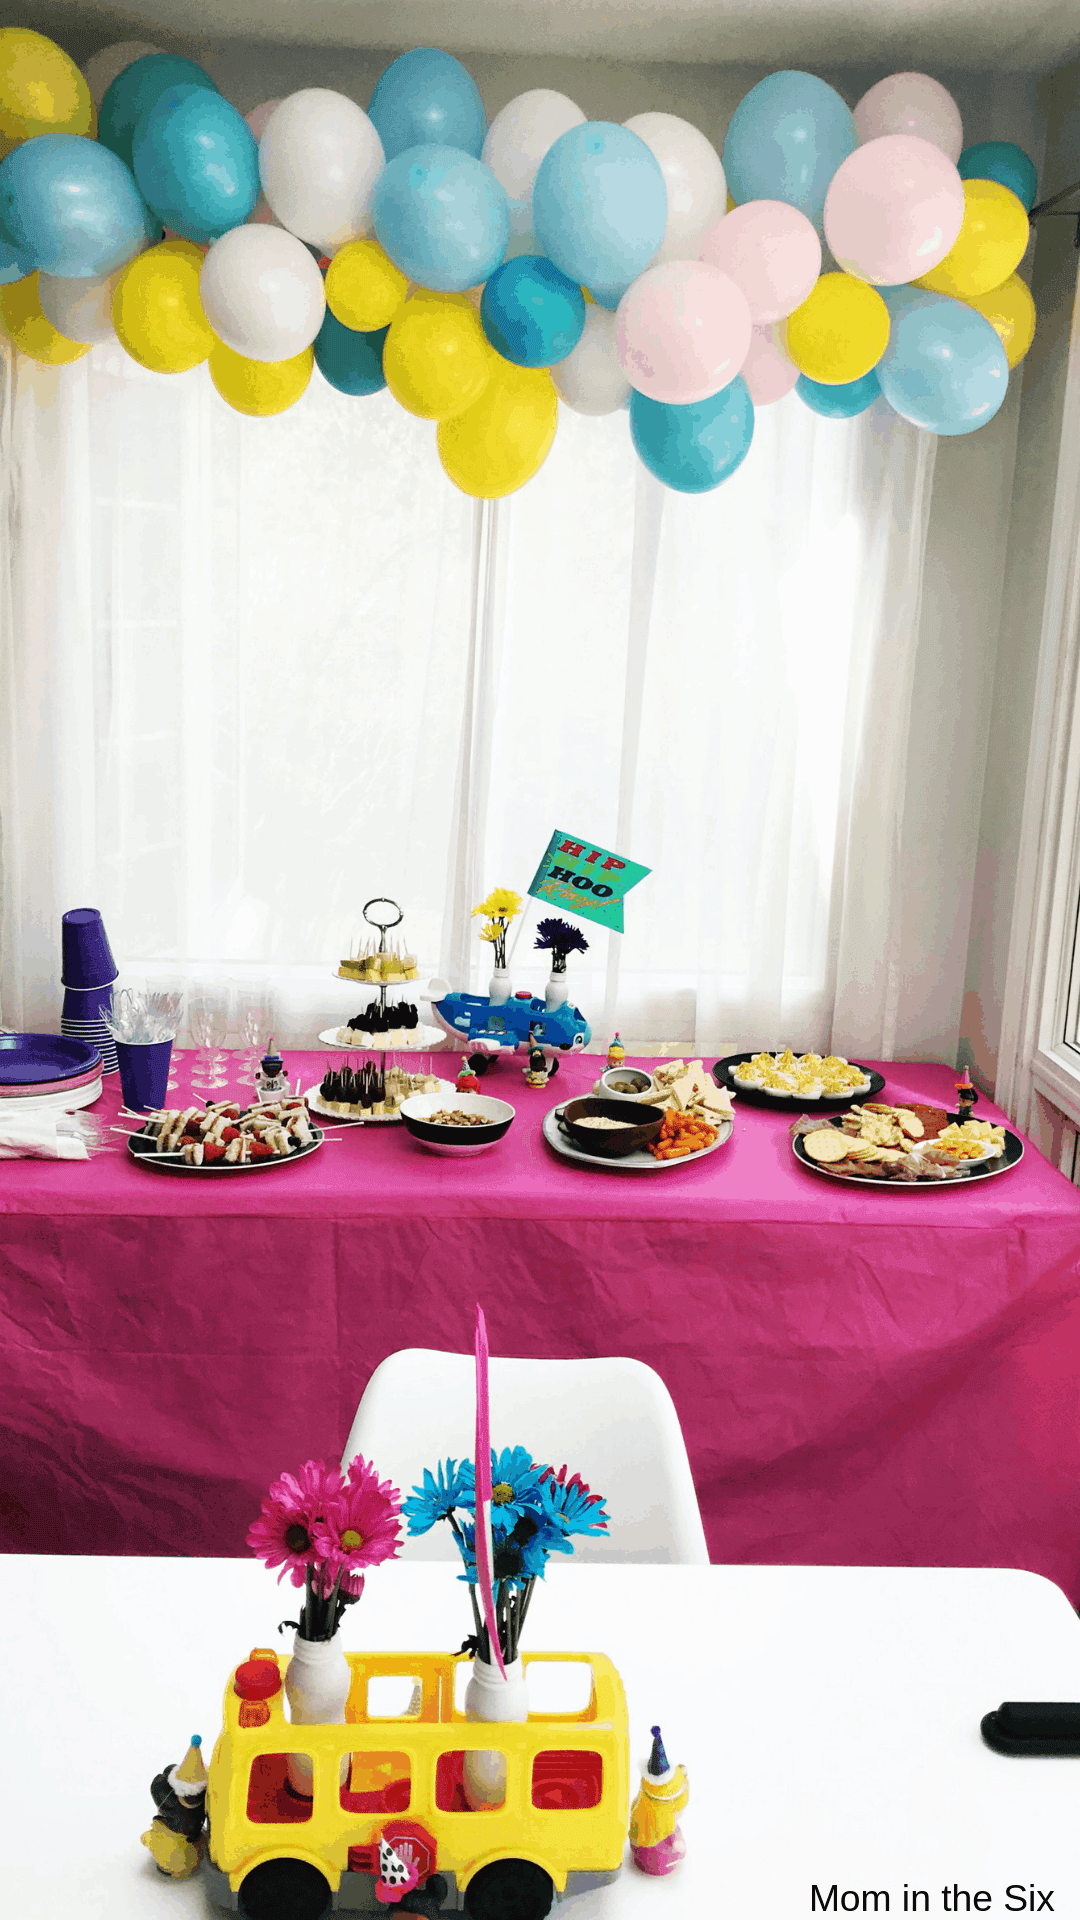 Balloon banner above table with food and Little People Bus center piece